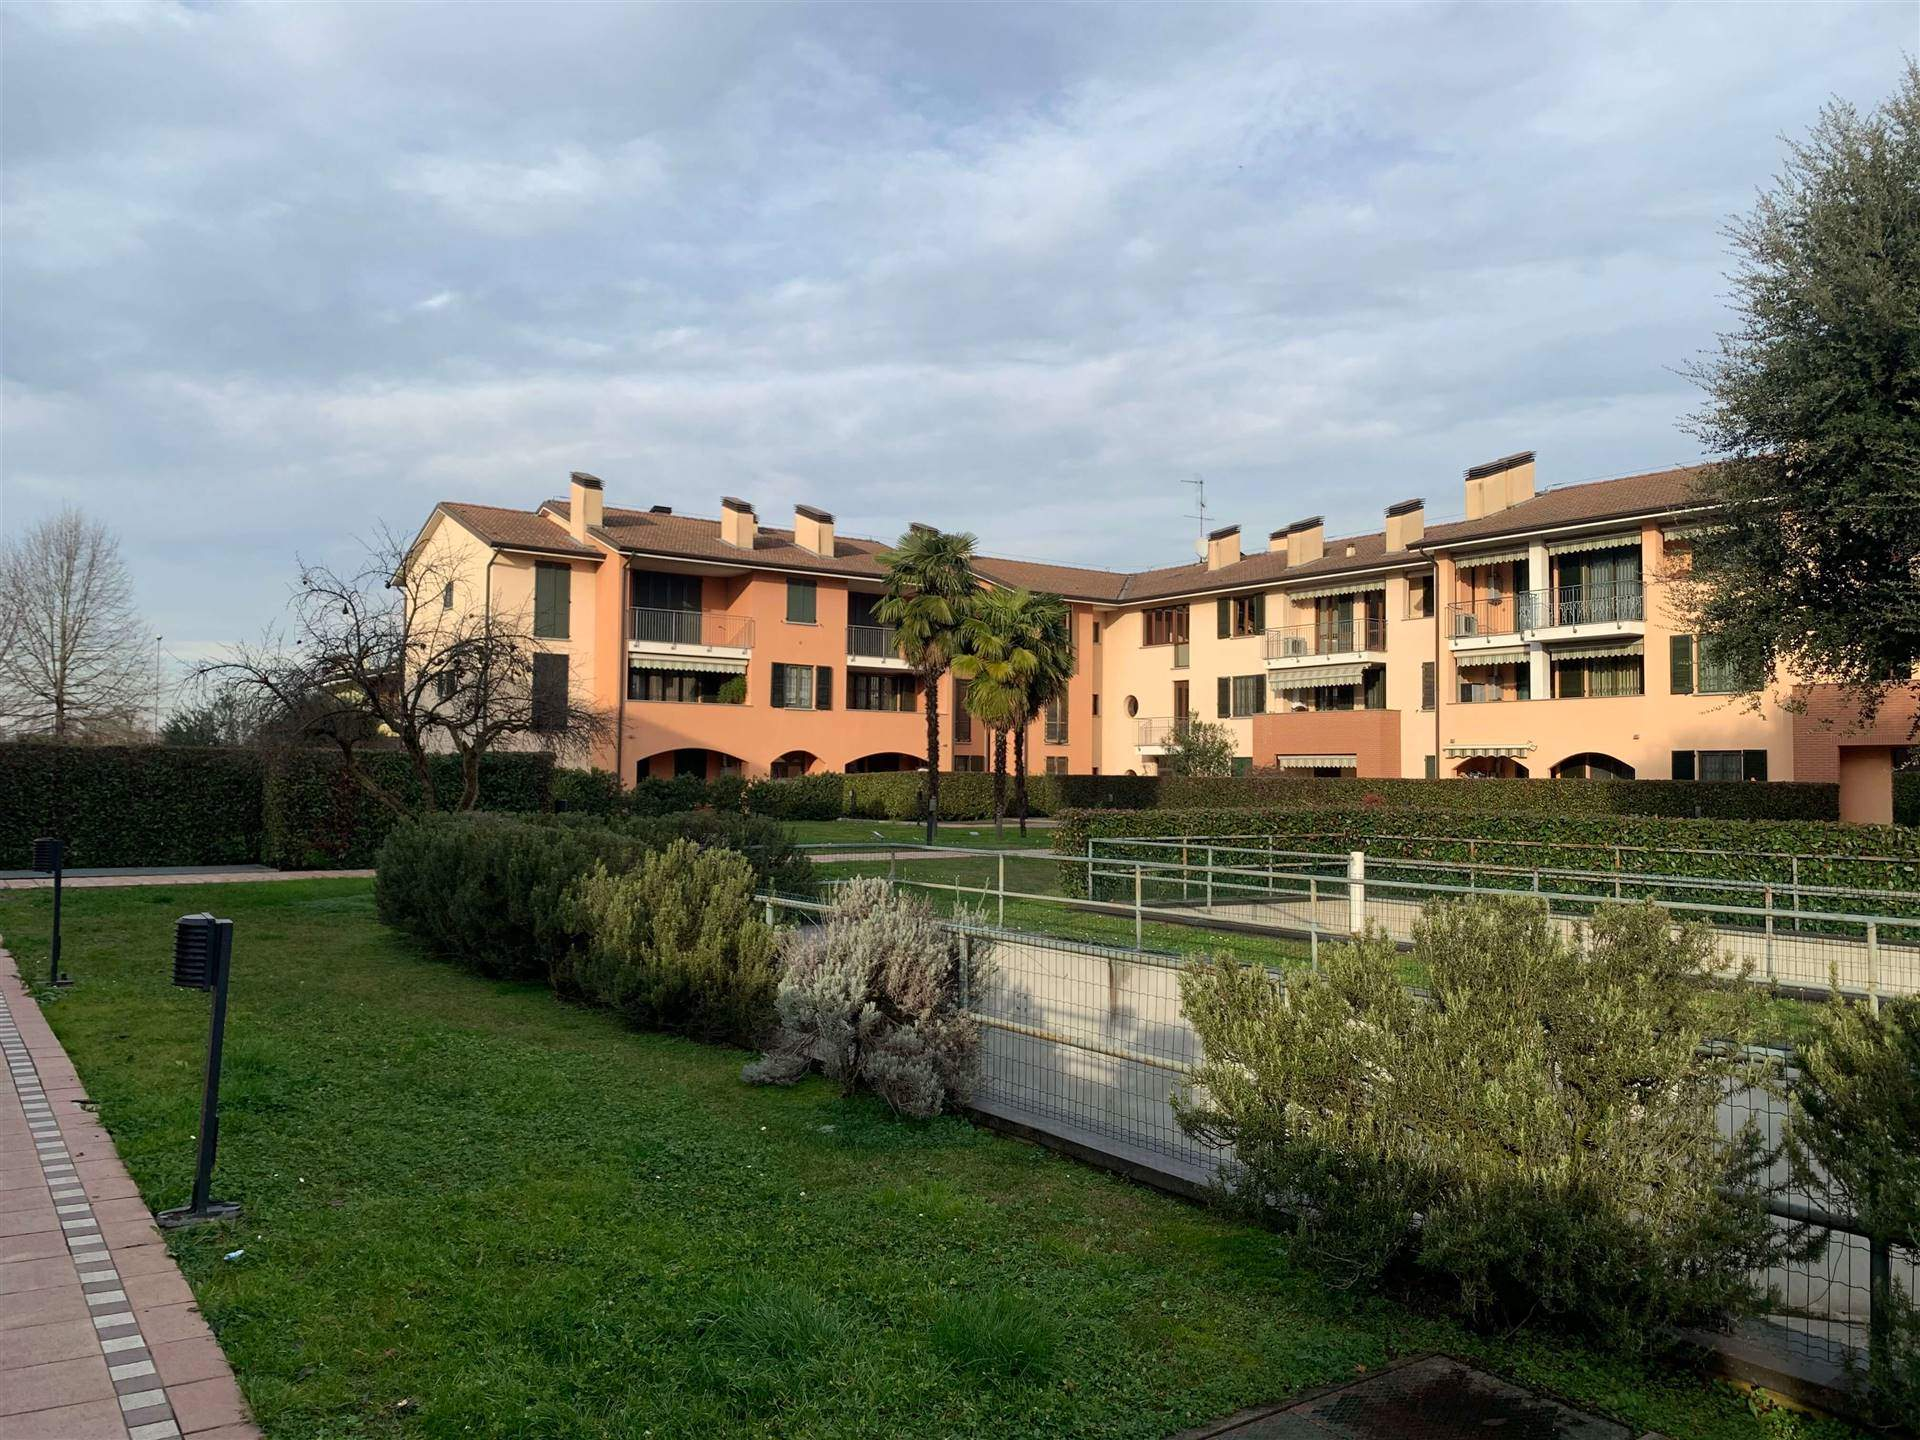 RONCO, CERNUSCO SUL NAVIGLIO, Apartment for sale of 53 Sq. mt., Excellent Condition, Heating Individual heating system, Energetic class: G, Epi: 300